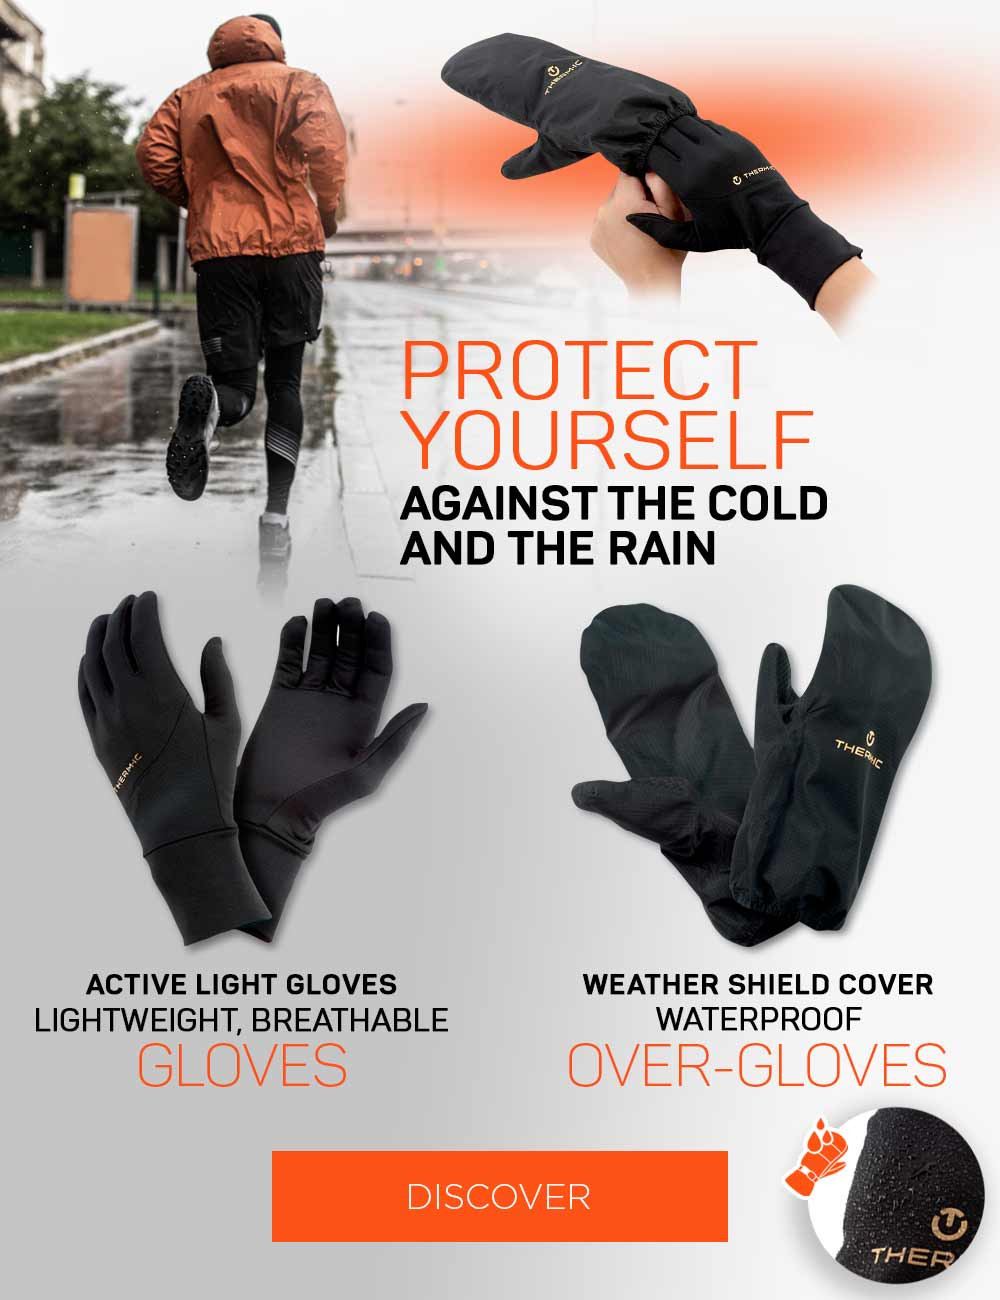 Protect yourself against the cold and the rain